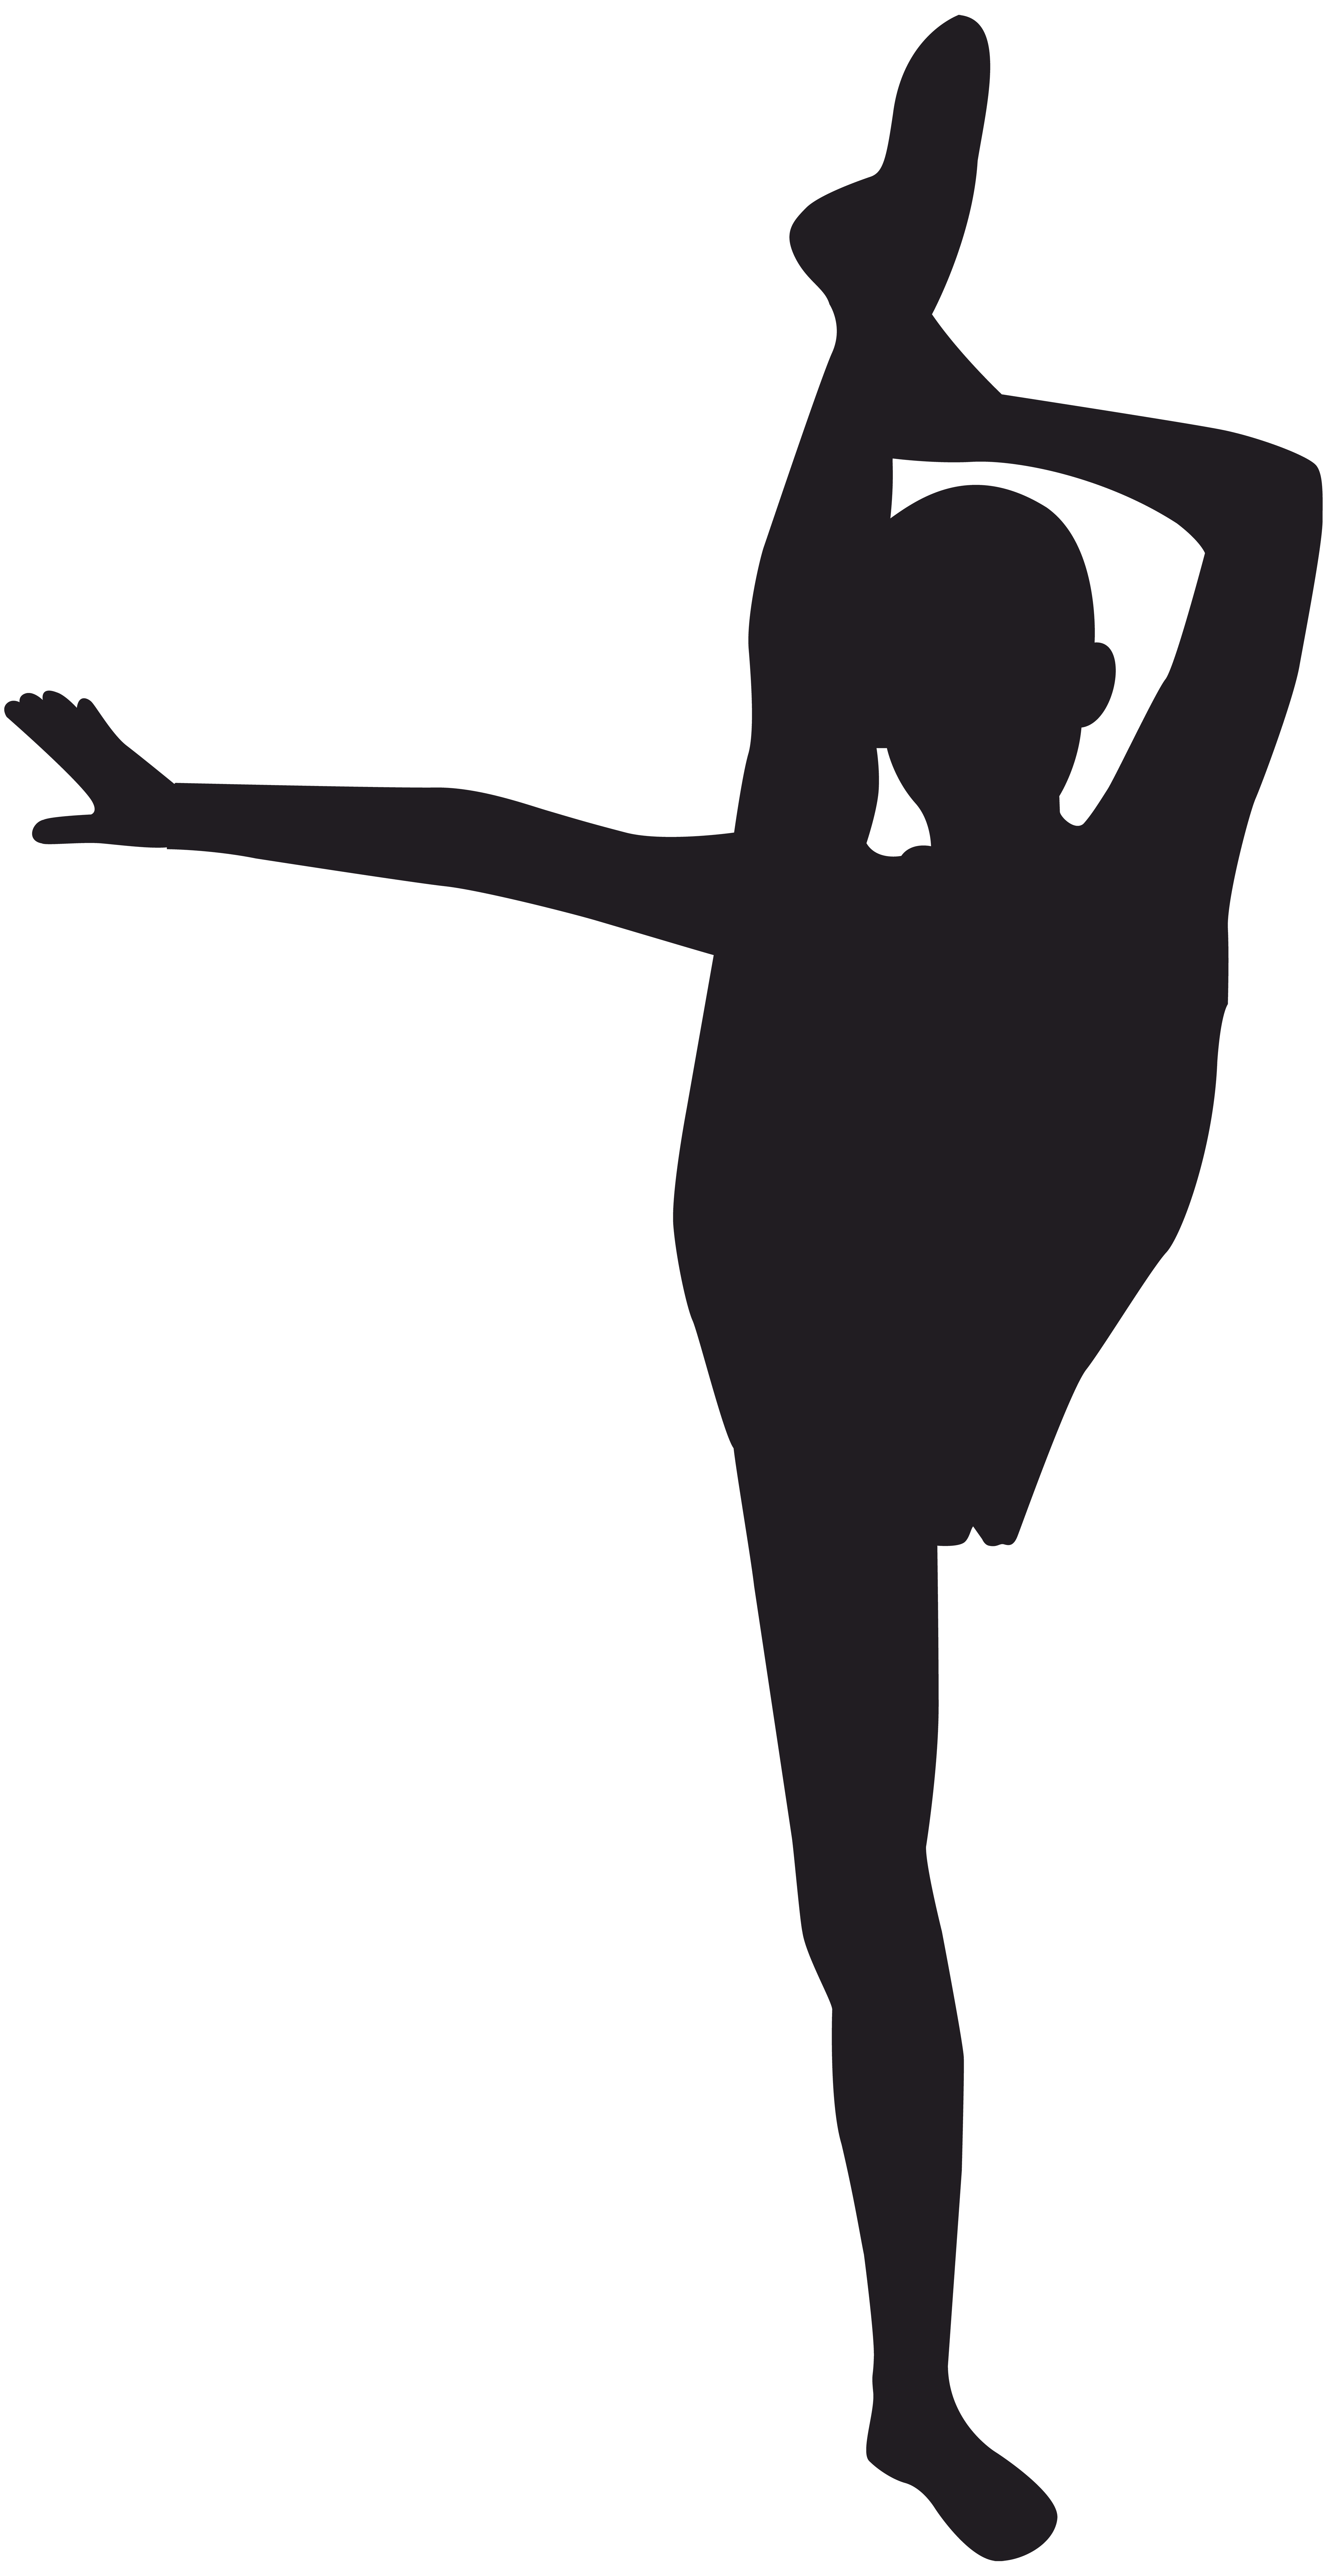 picture library library Silhouette at getdrawings com. Gymnastics clipart